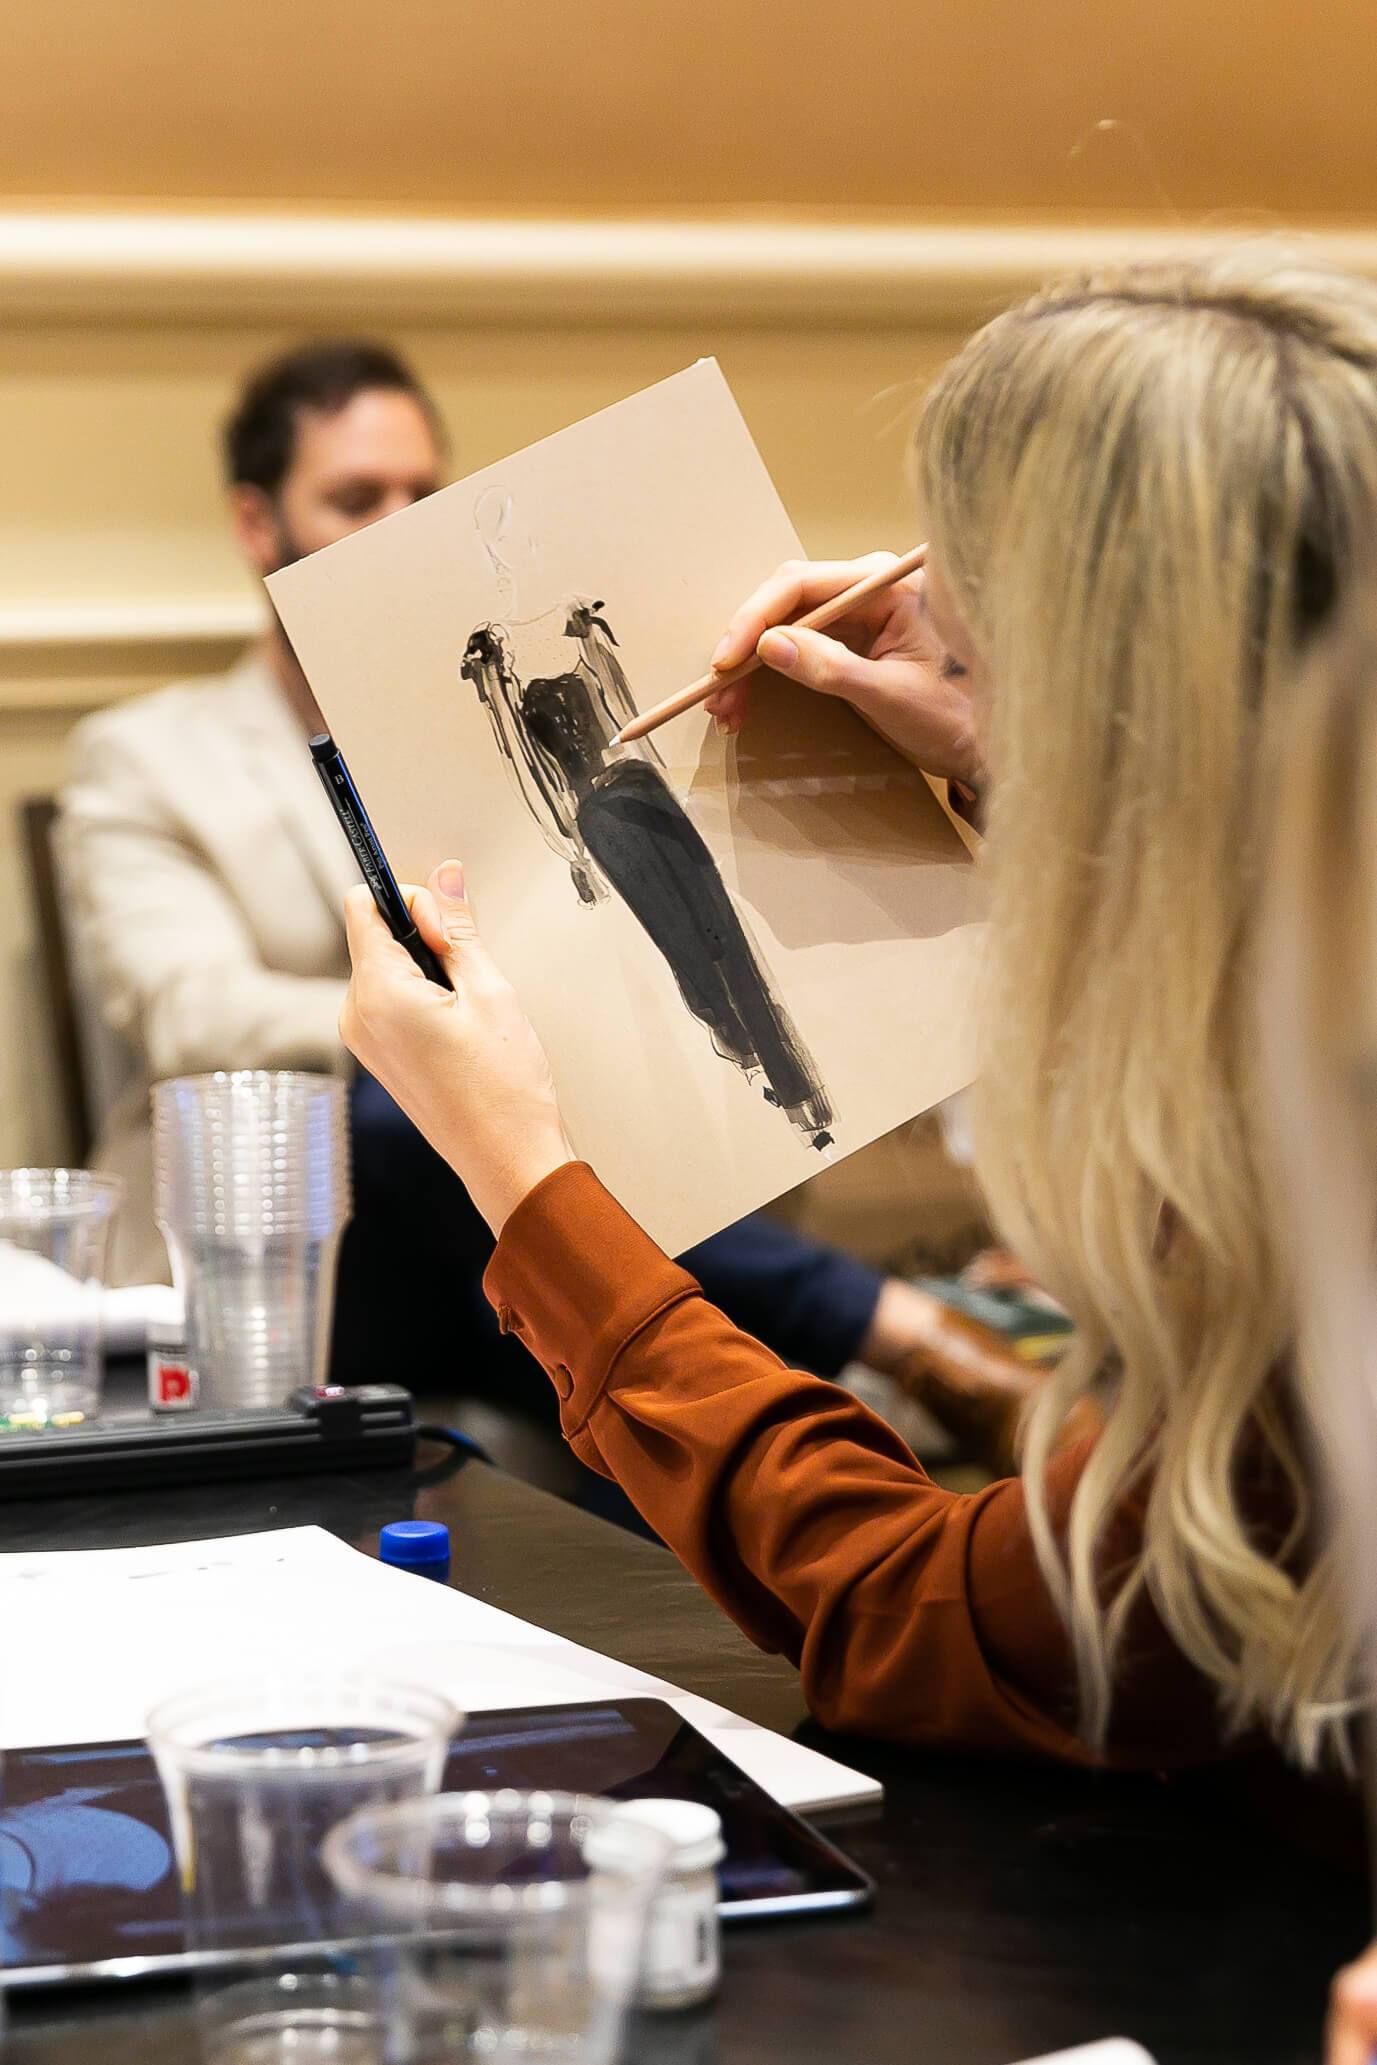 Attendees got a front row seat to learn hands-on from top influencers and creators, including fashion illustrator Jeanette Getrost.